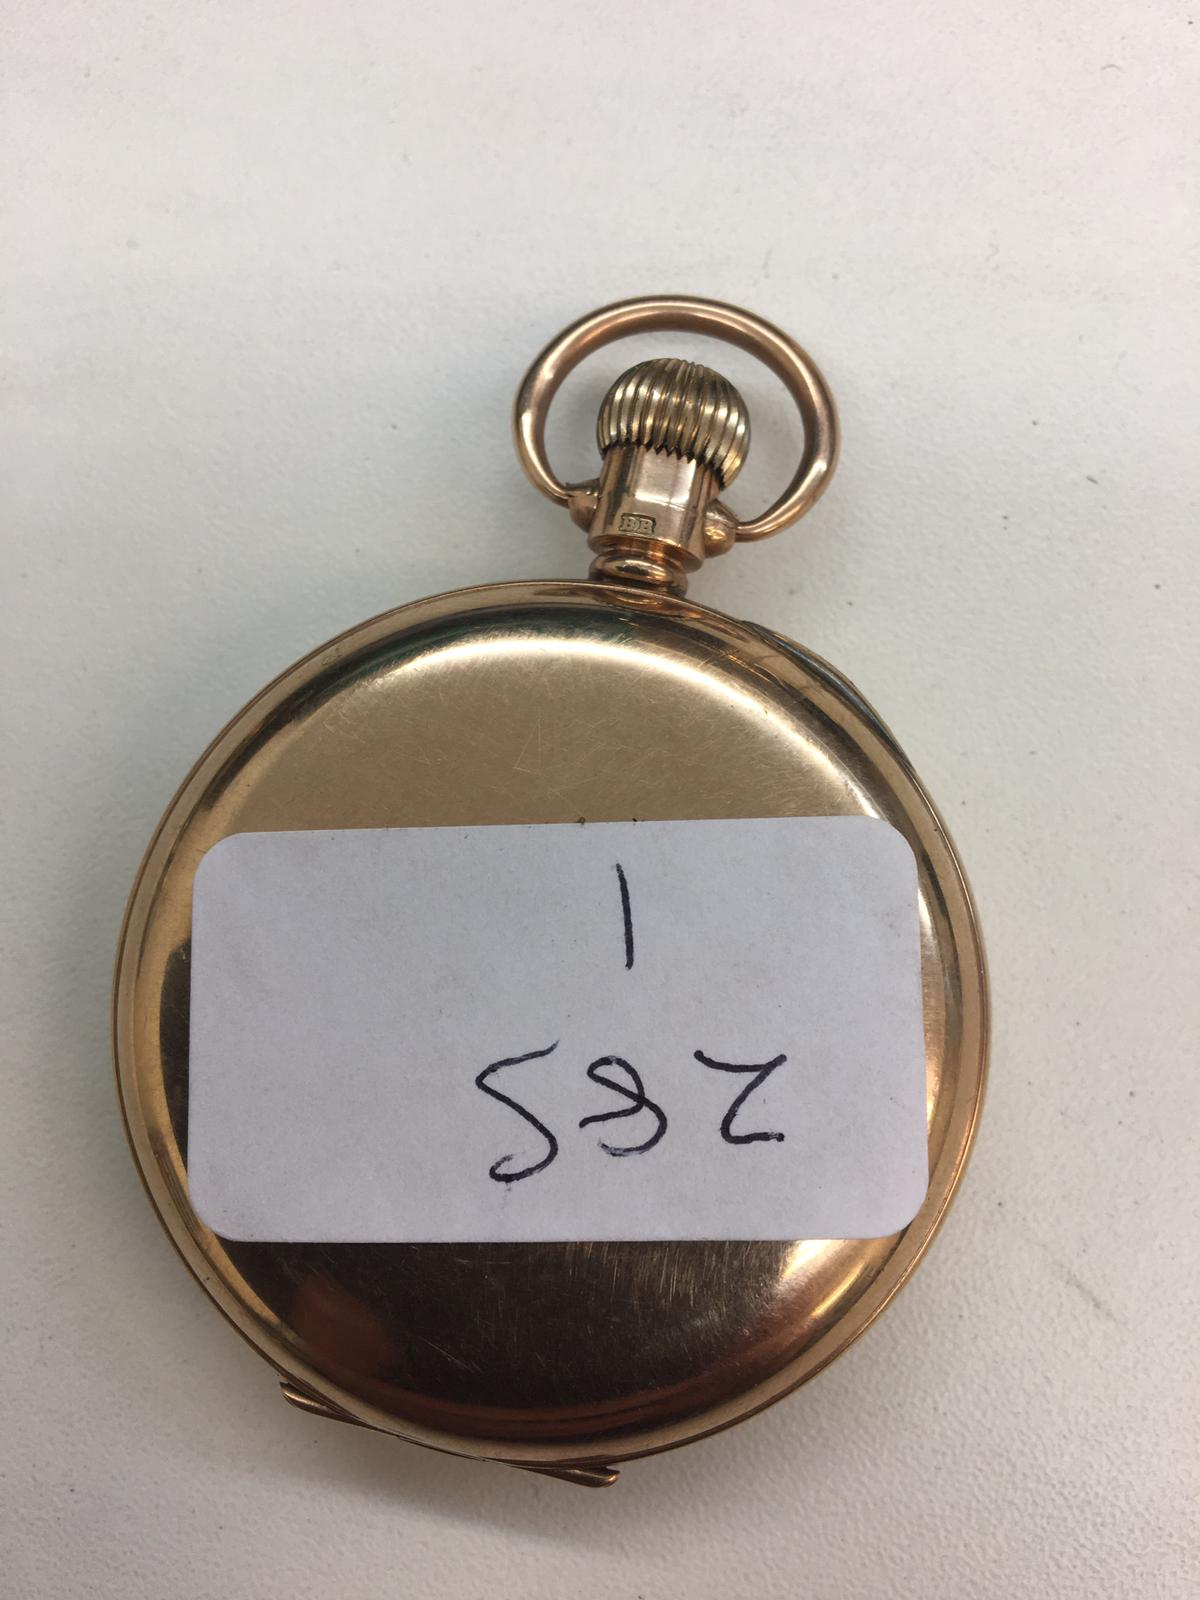 Lot 11 - 9ct gold pocket watch with gold dust cover full working order, dial clean total weight 71.6g